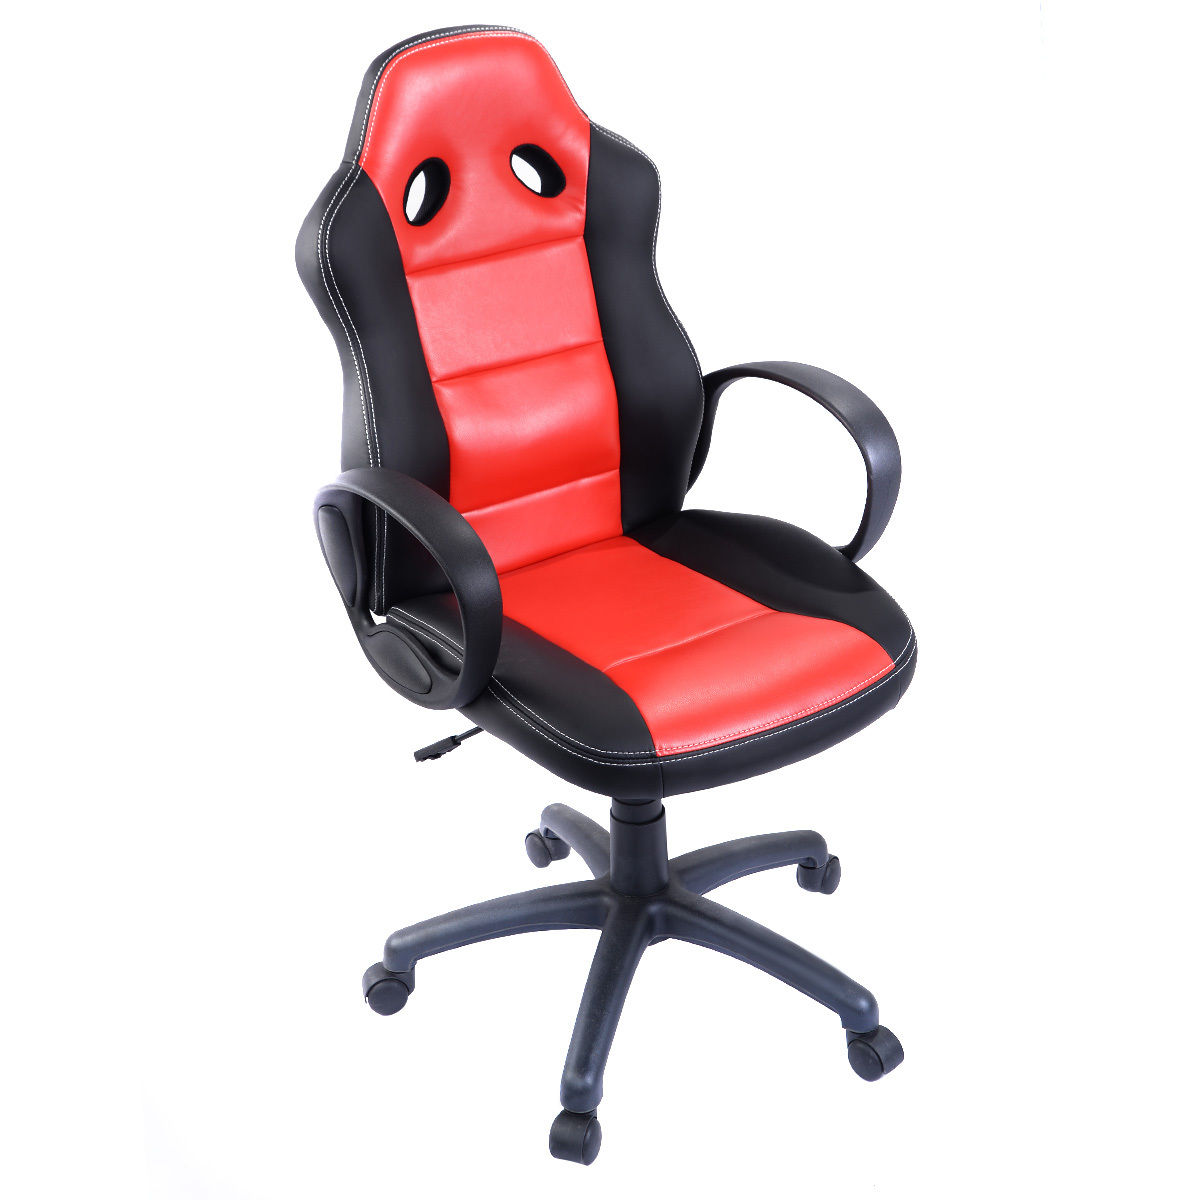 Exceptional Costway High Back Race Car Style Bucket Seat Office Desk Chair Gaming Chair  (Red)